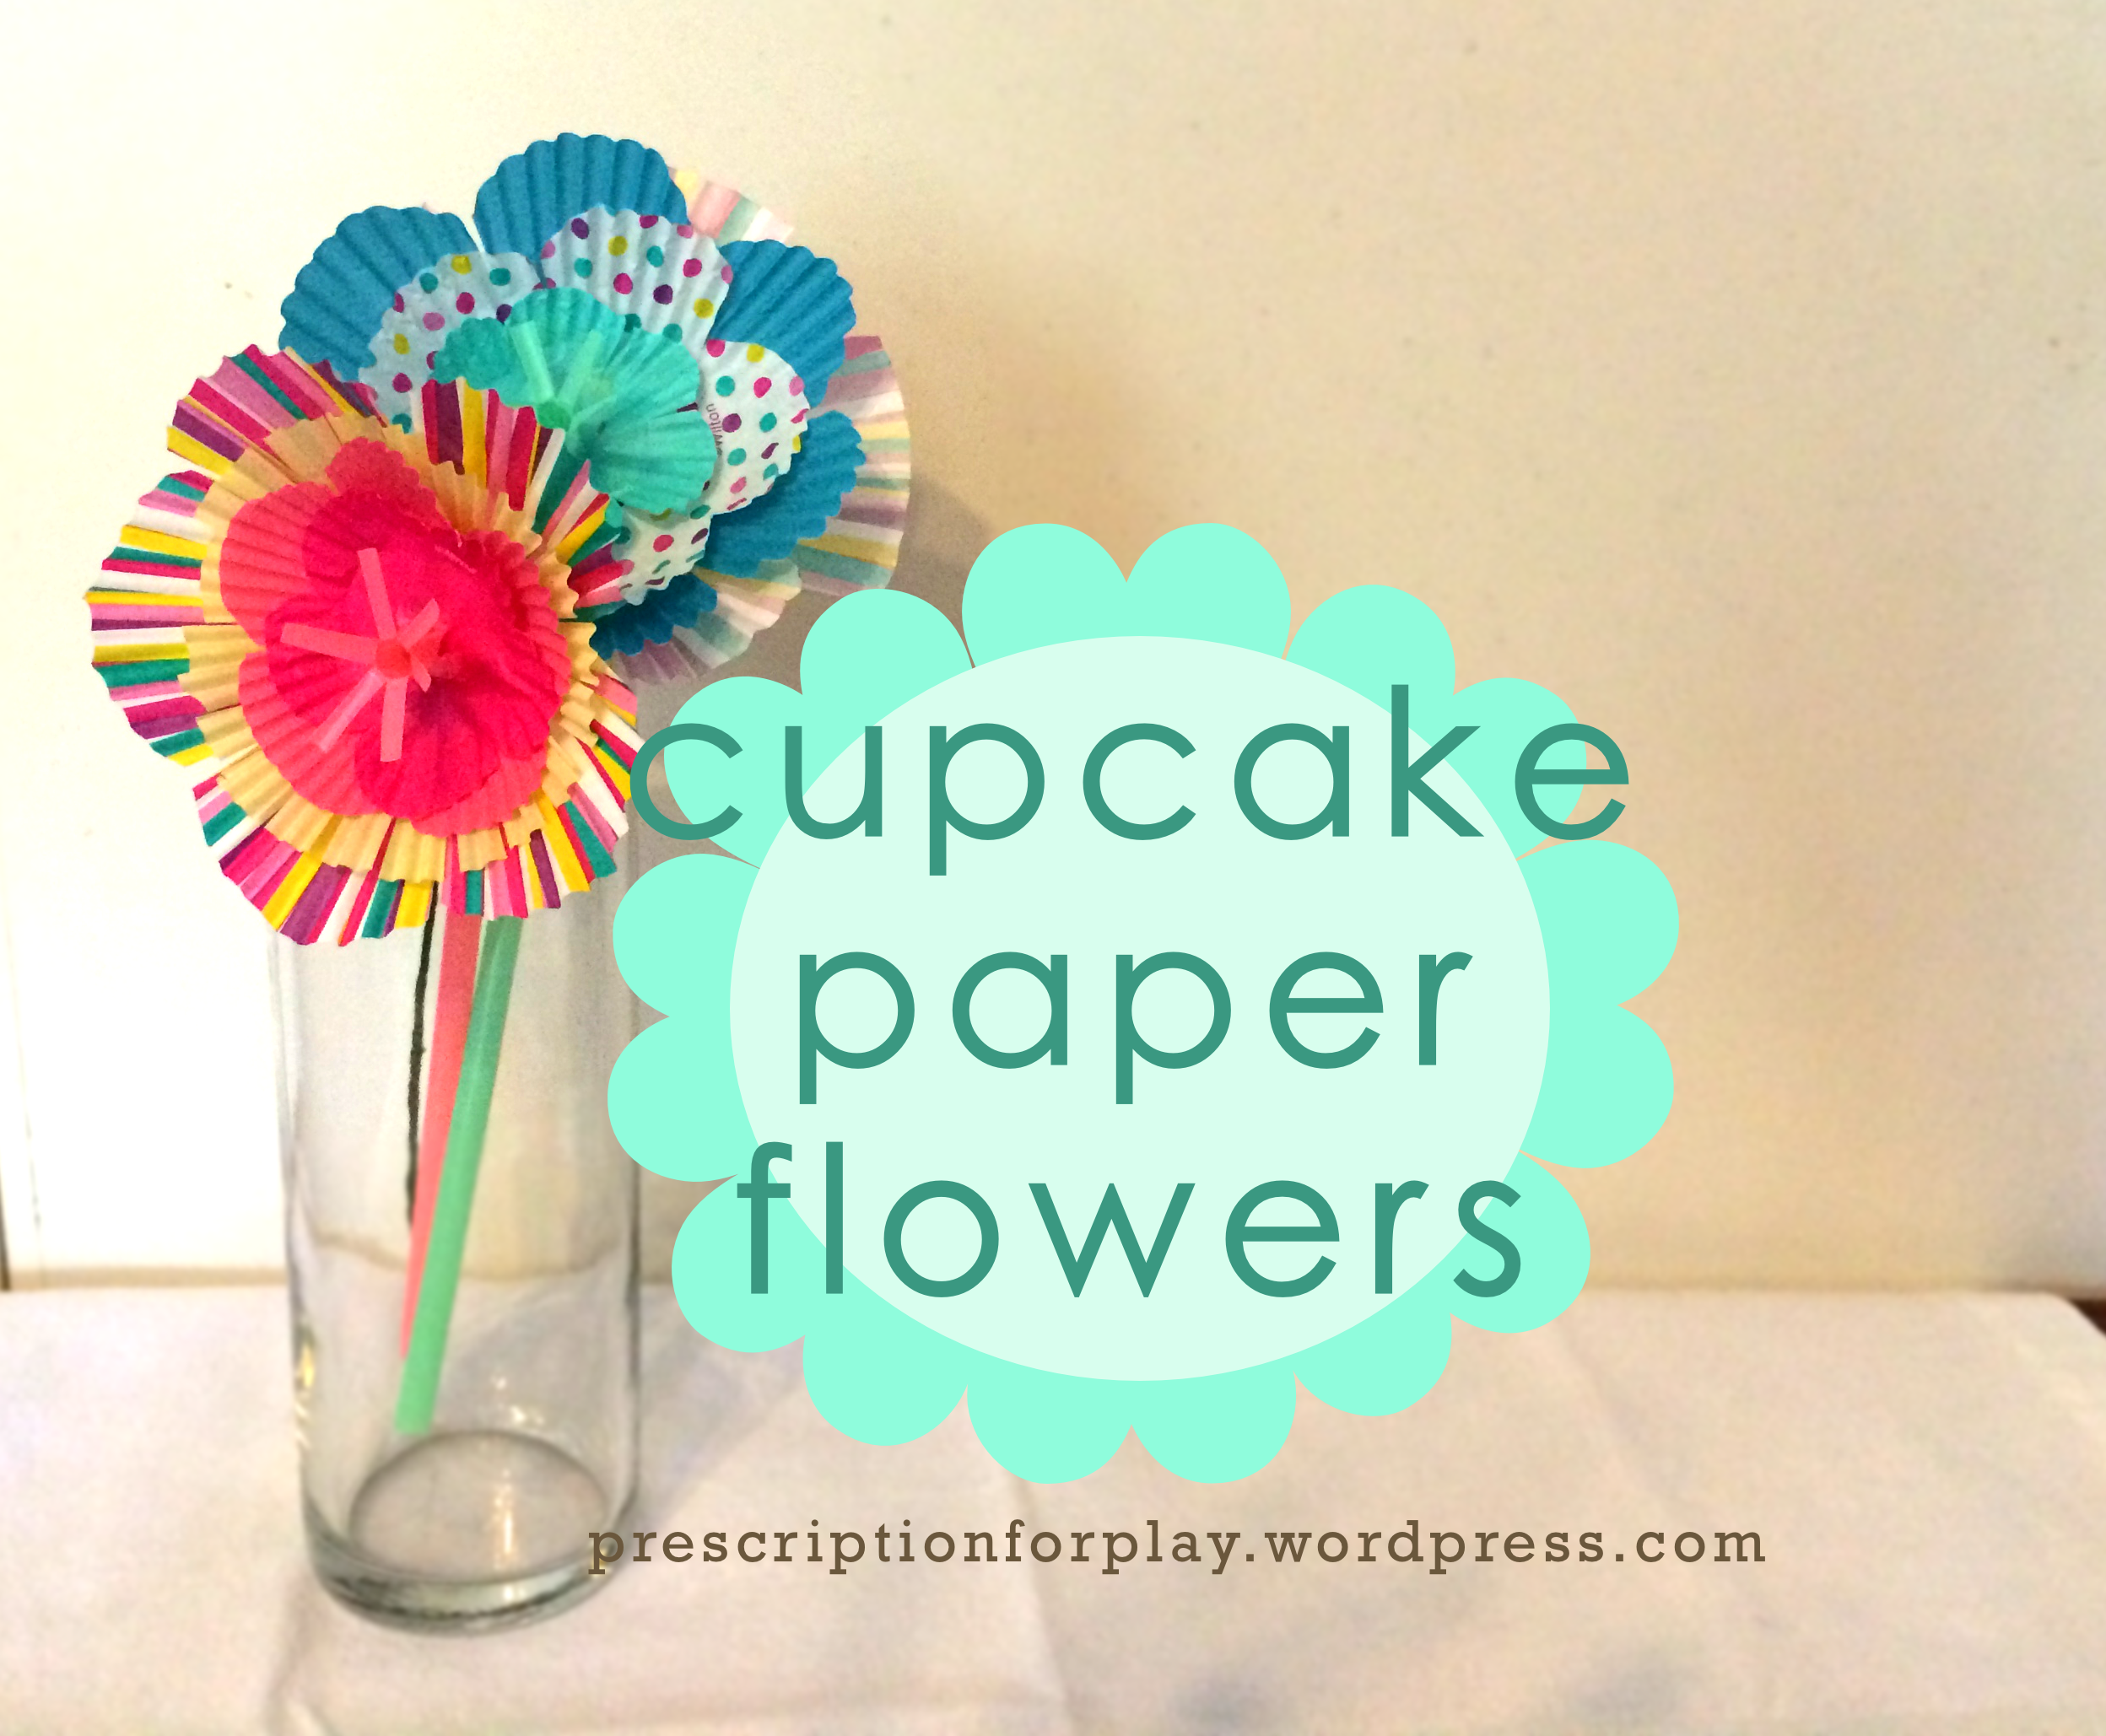 Cupcake paper flowers prescription for play i hope that everyone is adjusting to the end of summer and the start of school it has been a super busy few weeks for me and far too long since ive mightylinksfo